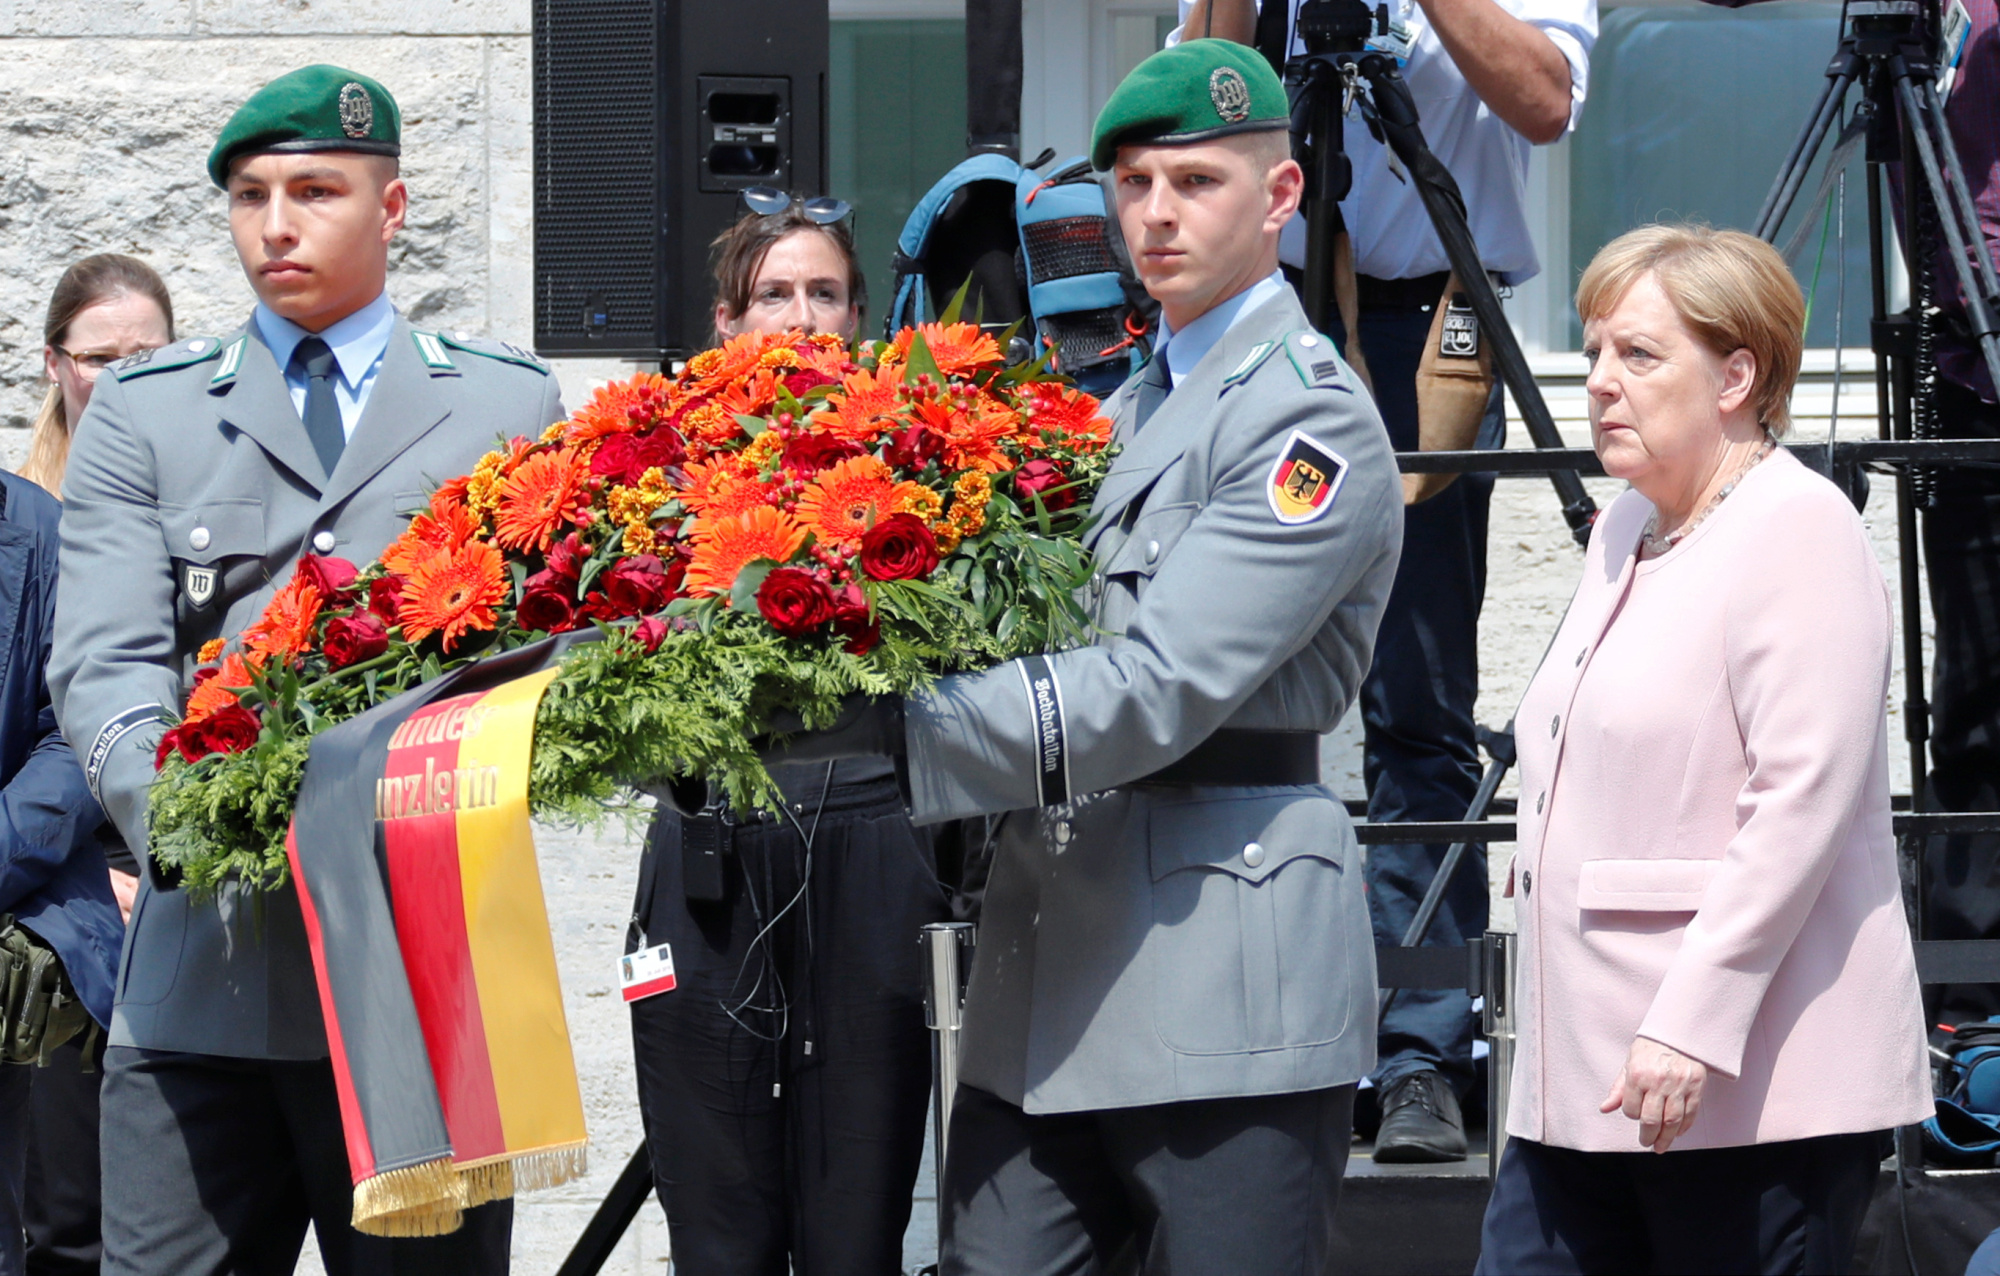 German Chancellor Angela Merkel takes part in a 75th anniversary wreath-laying ceremony at the site where officers led by Claus Schenk Graf von Stauffenberg were shot after their failed attempt on the life of Adolf Hitler, in the Bendlerblock building in Berlin on July 20. | REUTERS